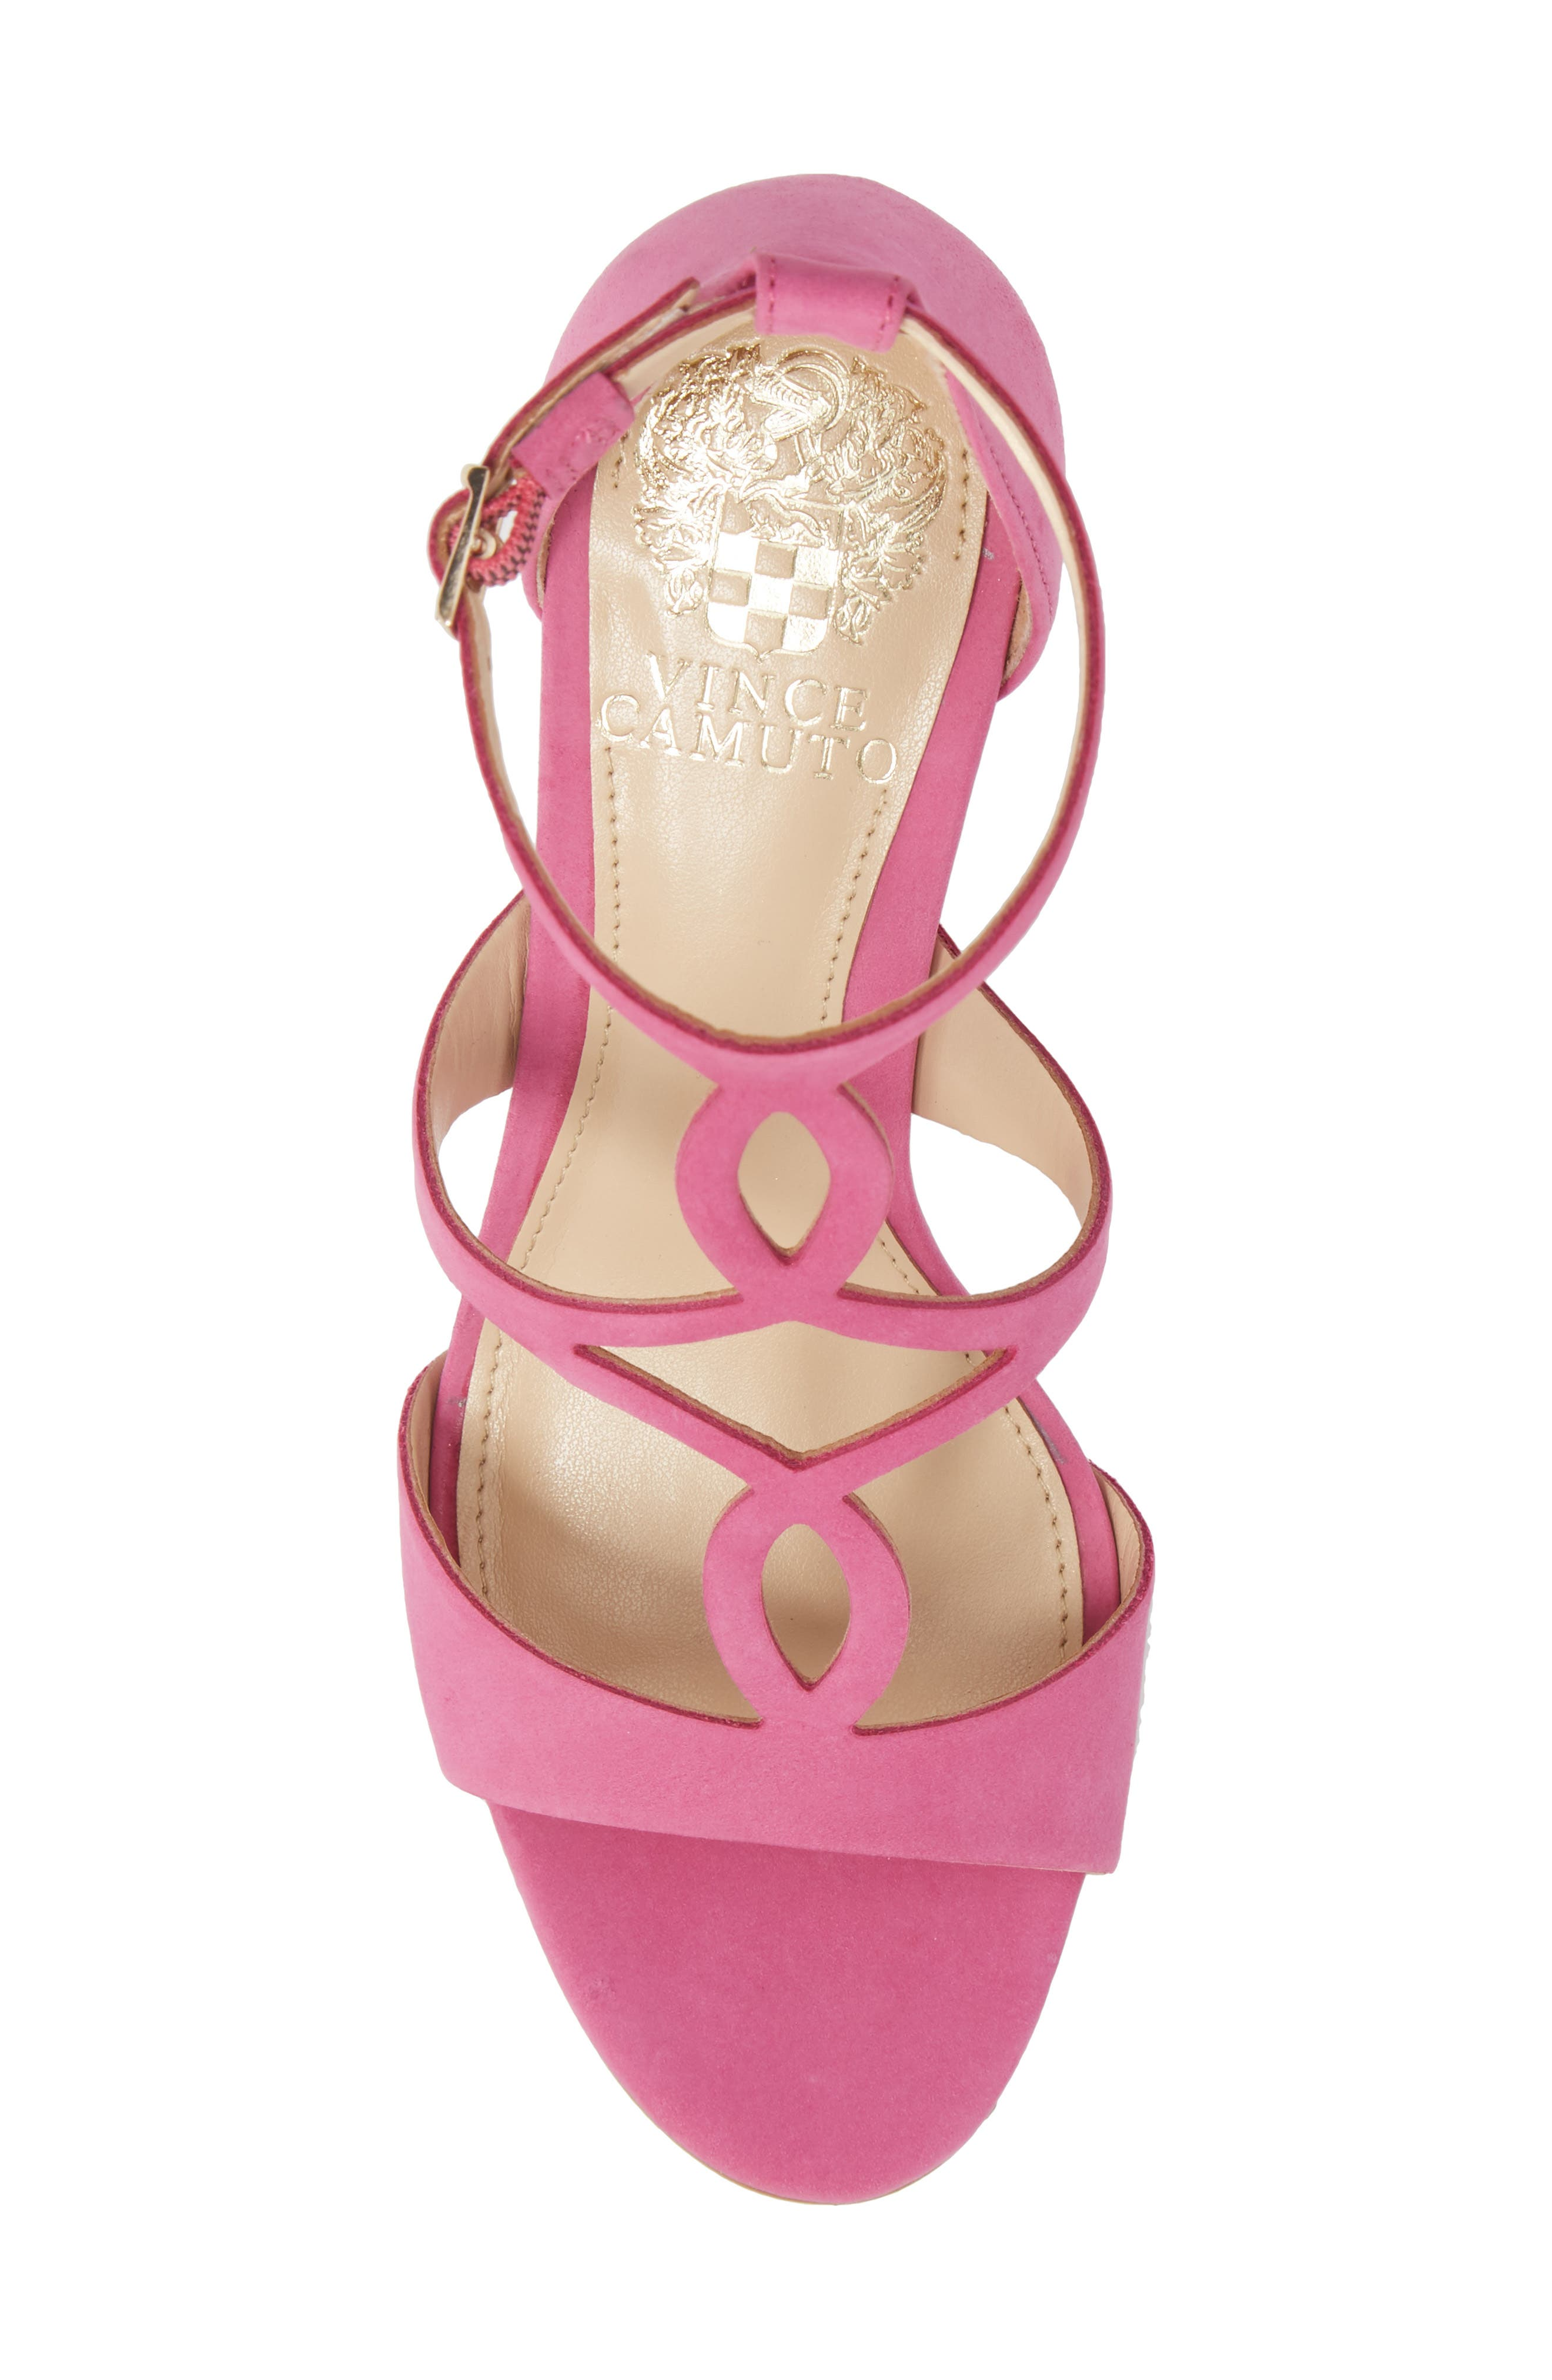 Payto Sandal,                             Alternate thumbnail 5, color,                             Pink Leather